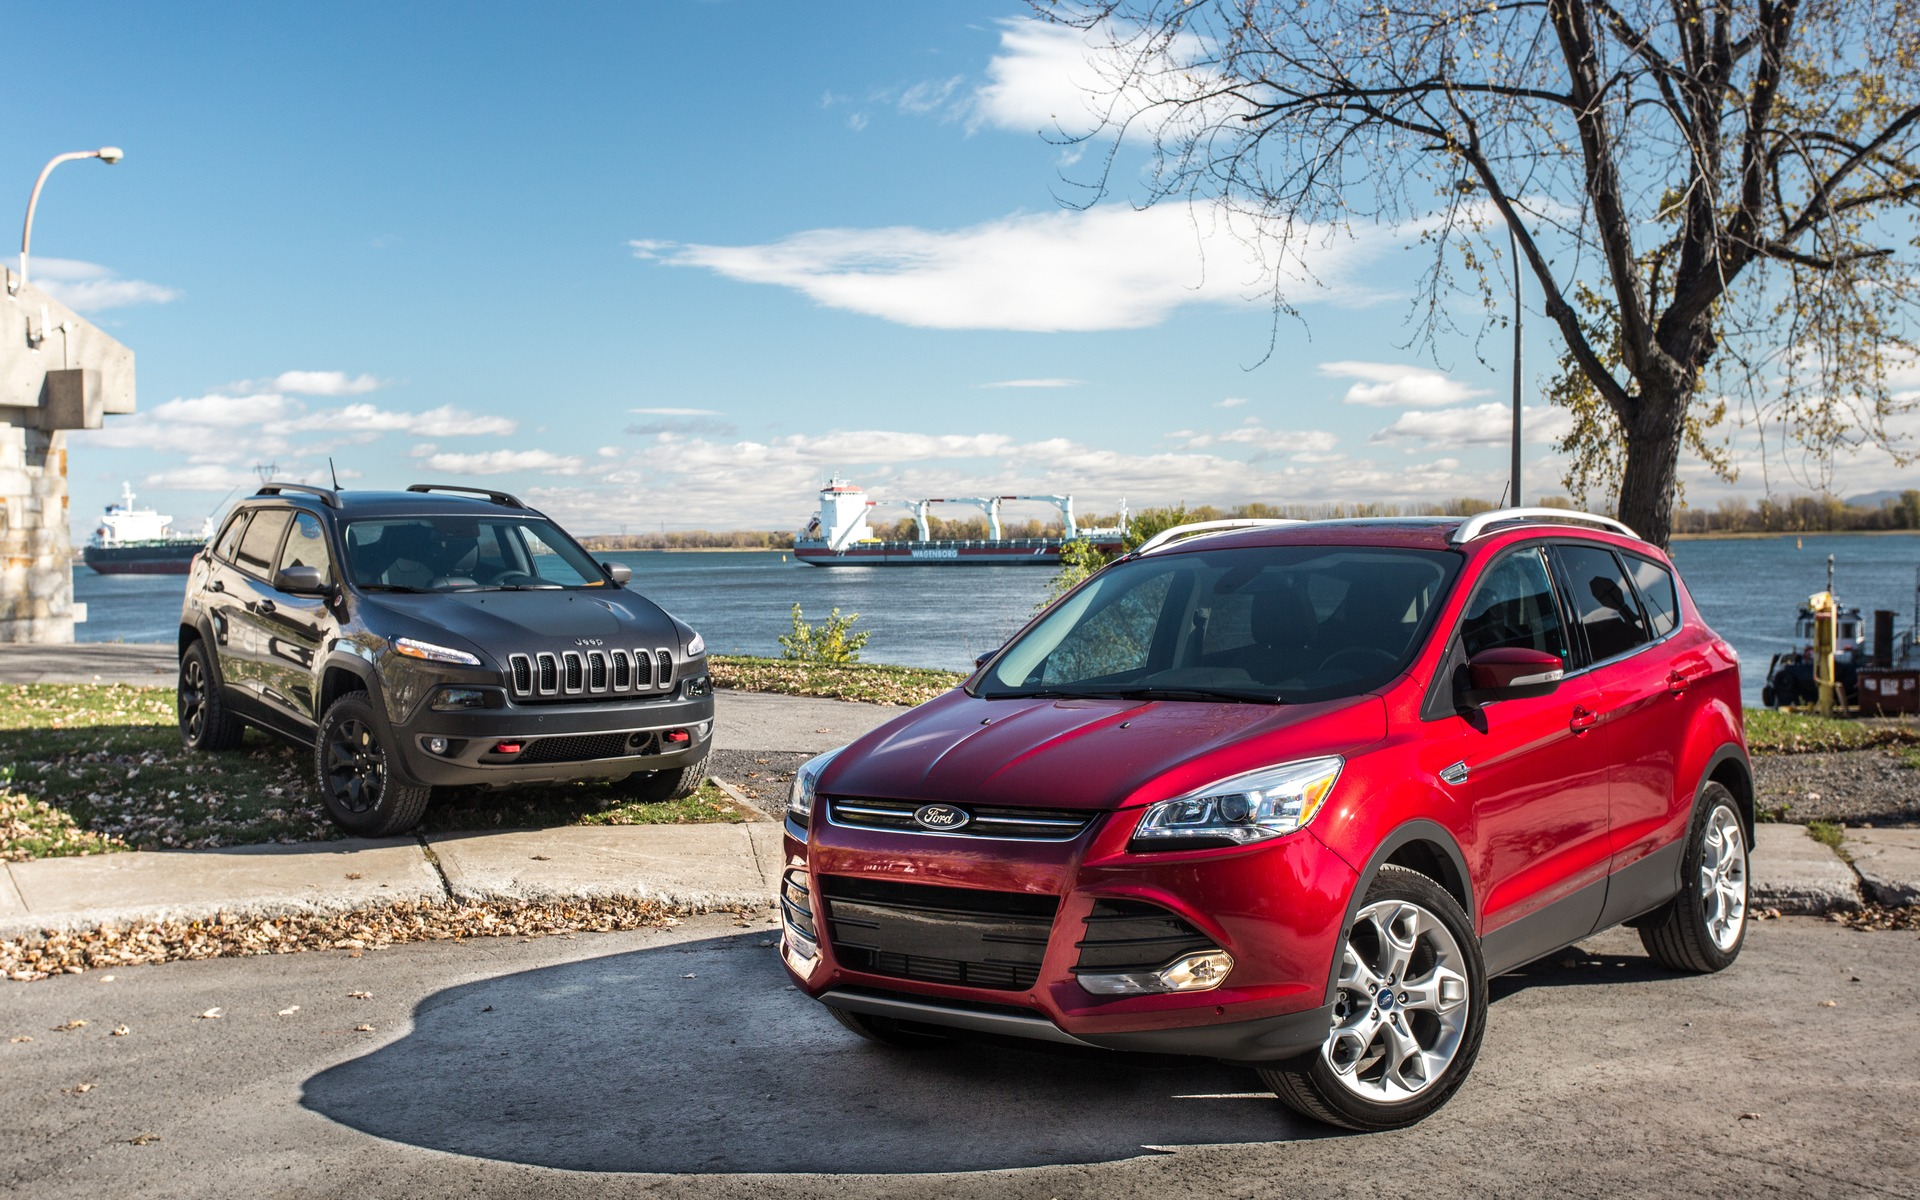 Difference Between Wrangler Models >> The Difference Between The Jeep Cherokee Models | Autos Post